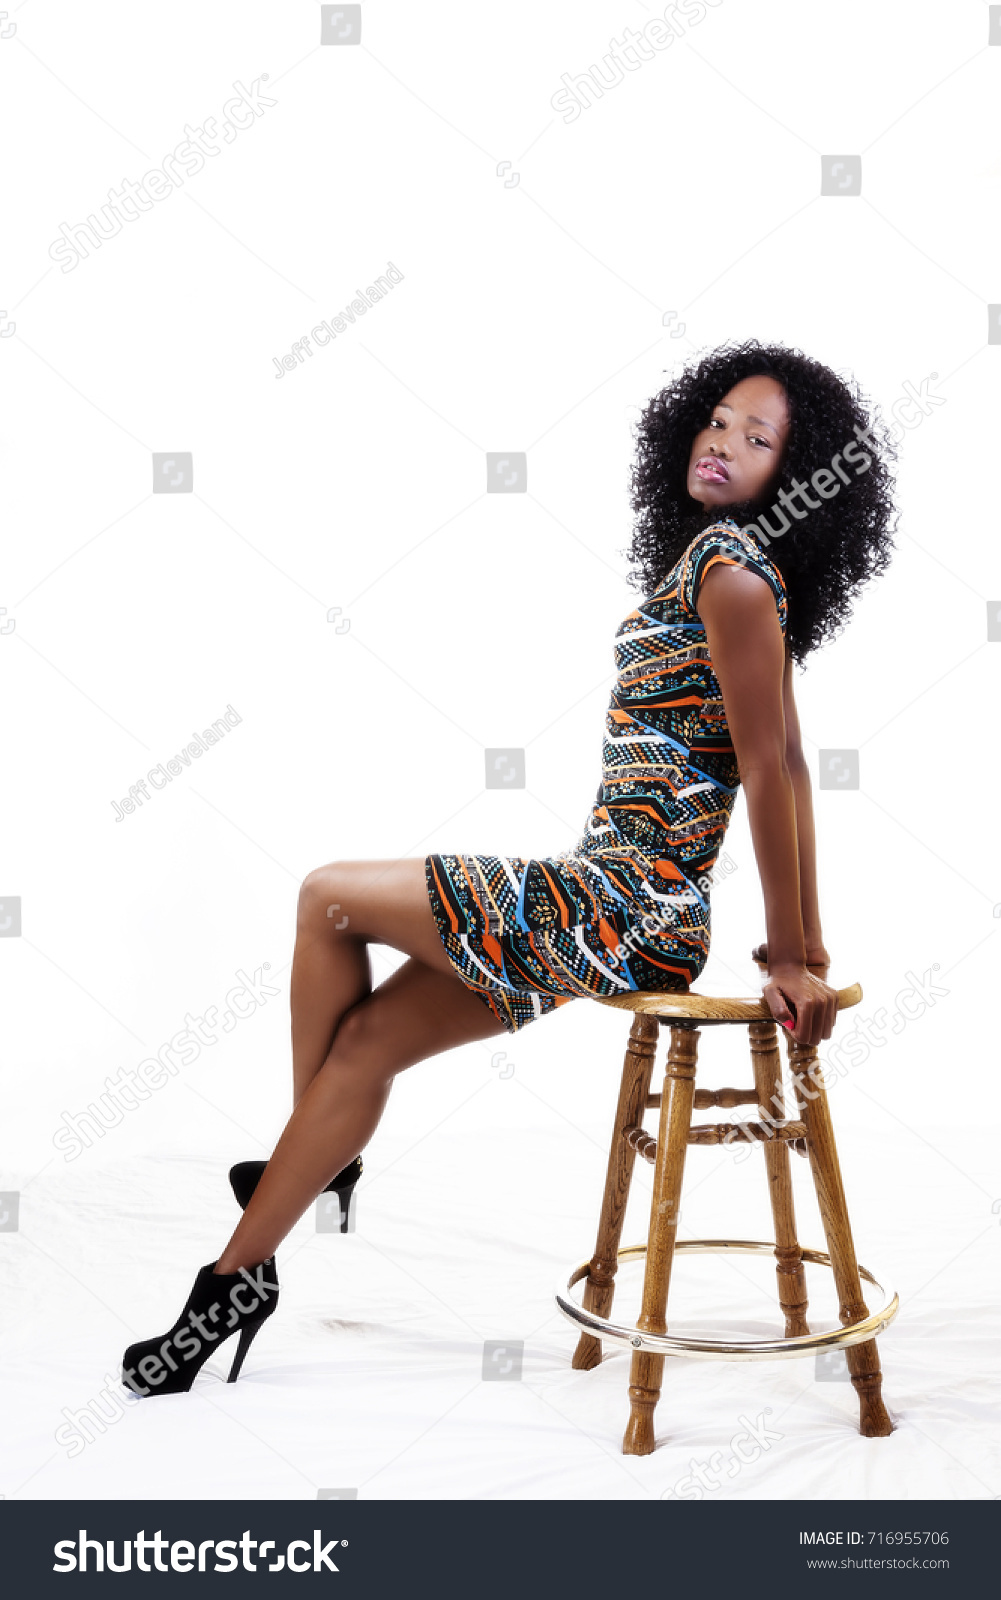 Attractive Slender African American Teen Girl Sitting On Edge Of Stool In Dress